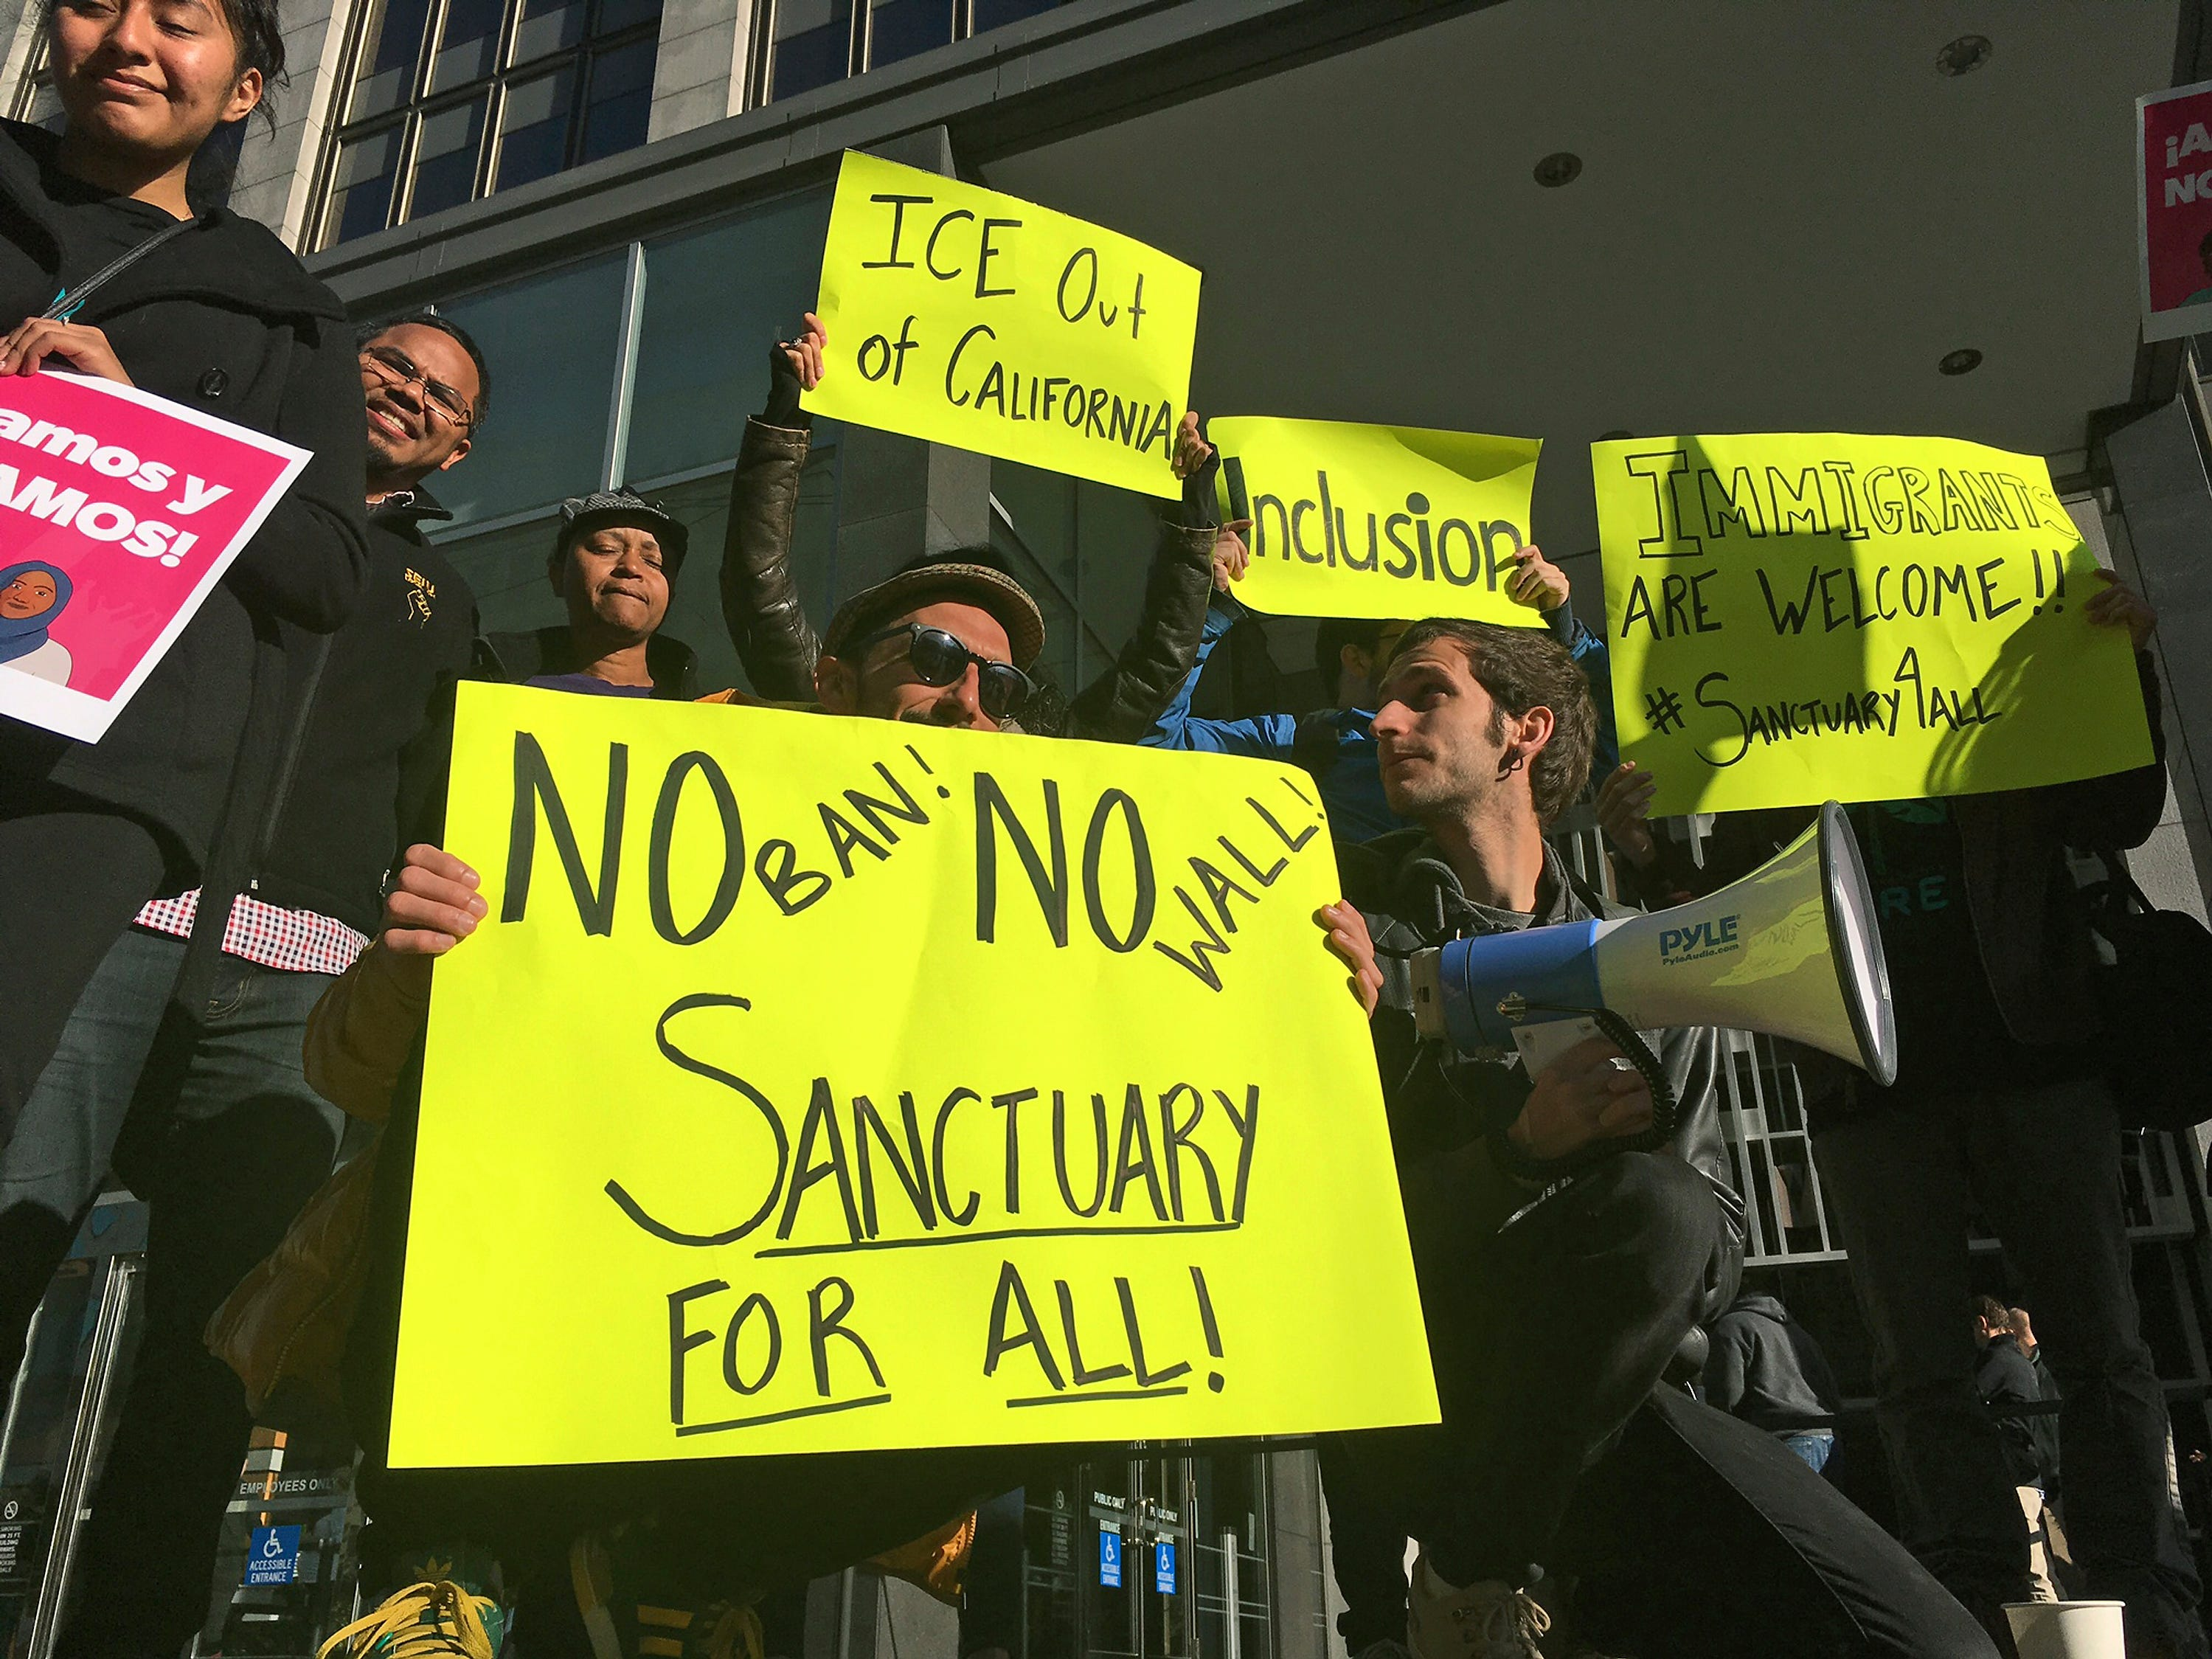 Trump's plan to put immigrants in sanctuary cities exposes real ugliness in both parties